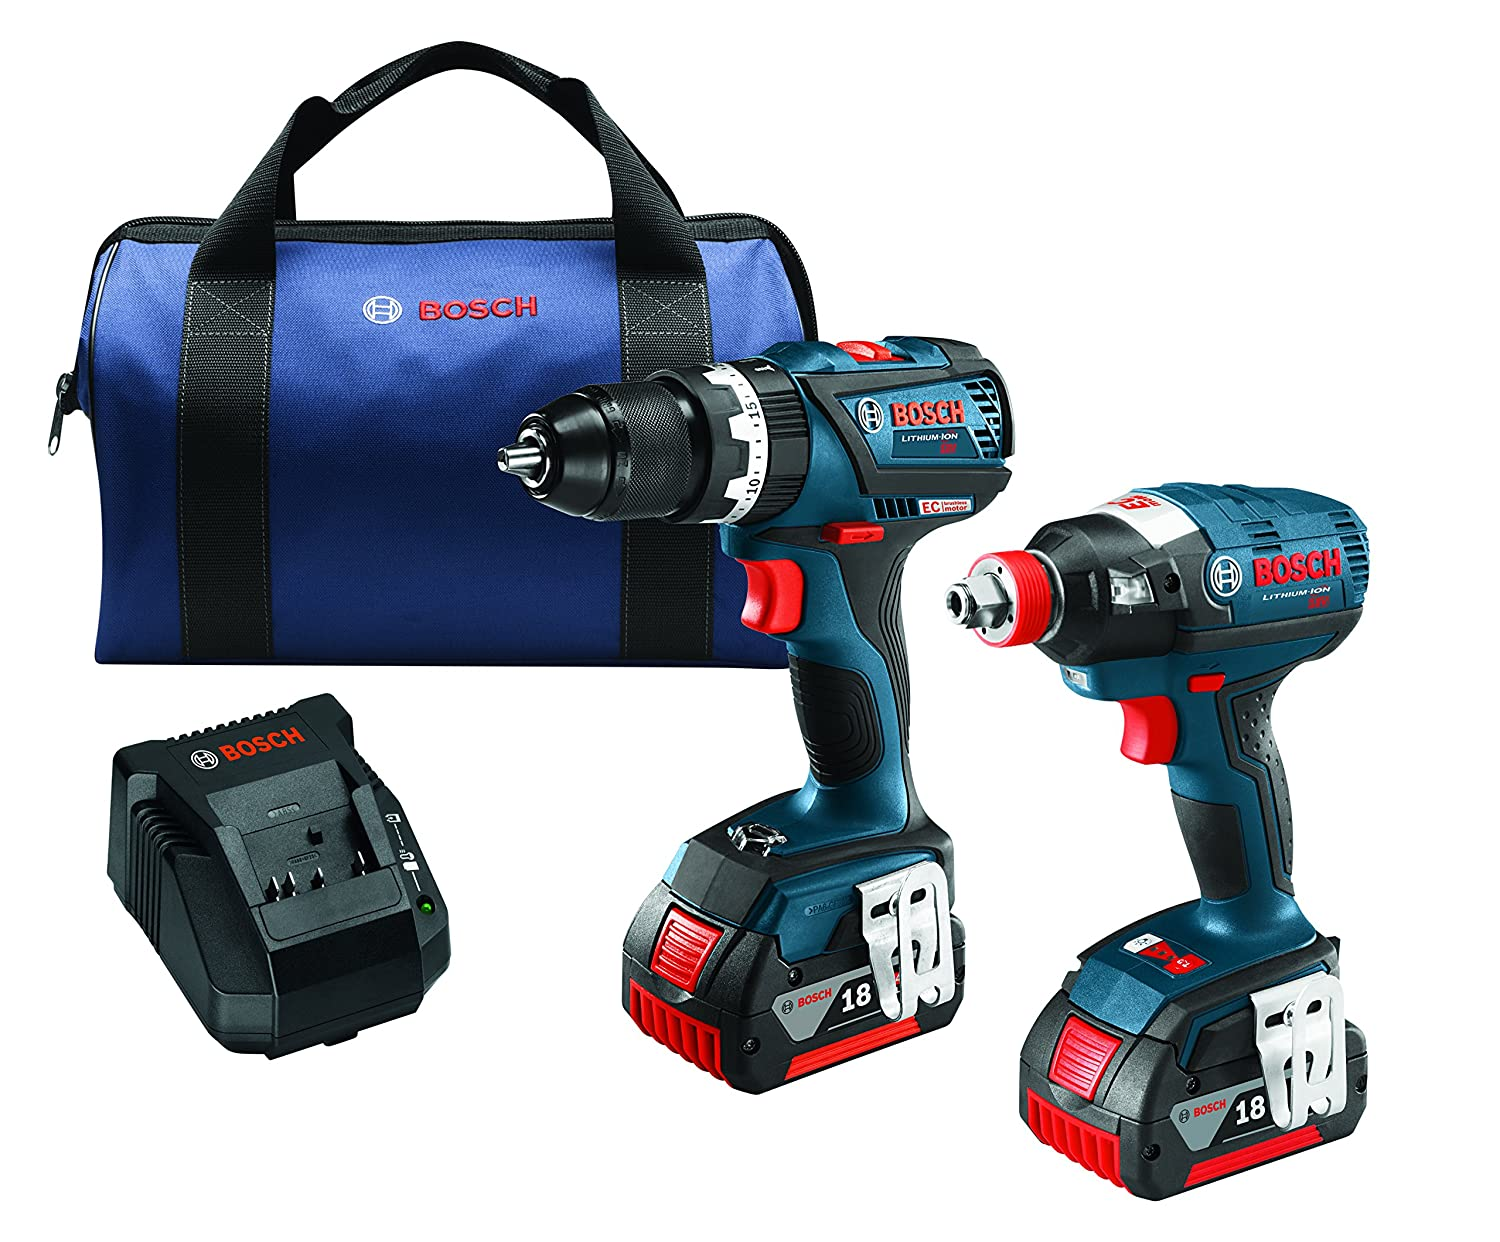 Bosch CLPK251-181 18V 2 Tool Combo Kit with 1 4 and 1 2 Socket Ready Impact Driver and 1 2 Hammer Drill Driver, Blue